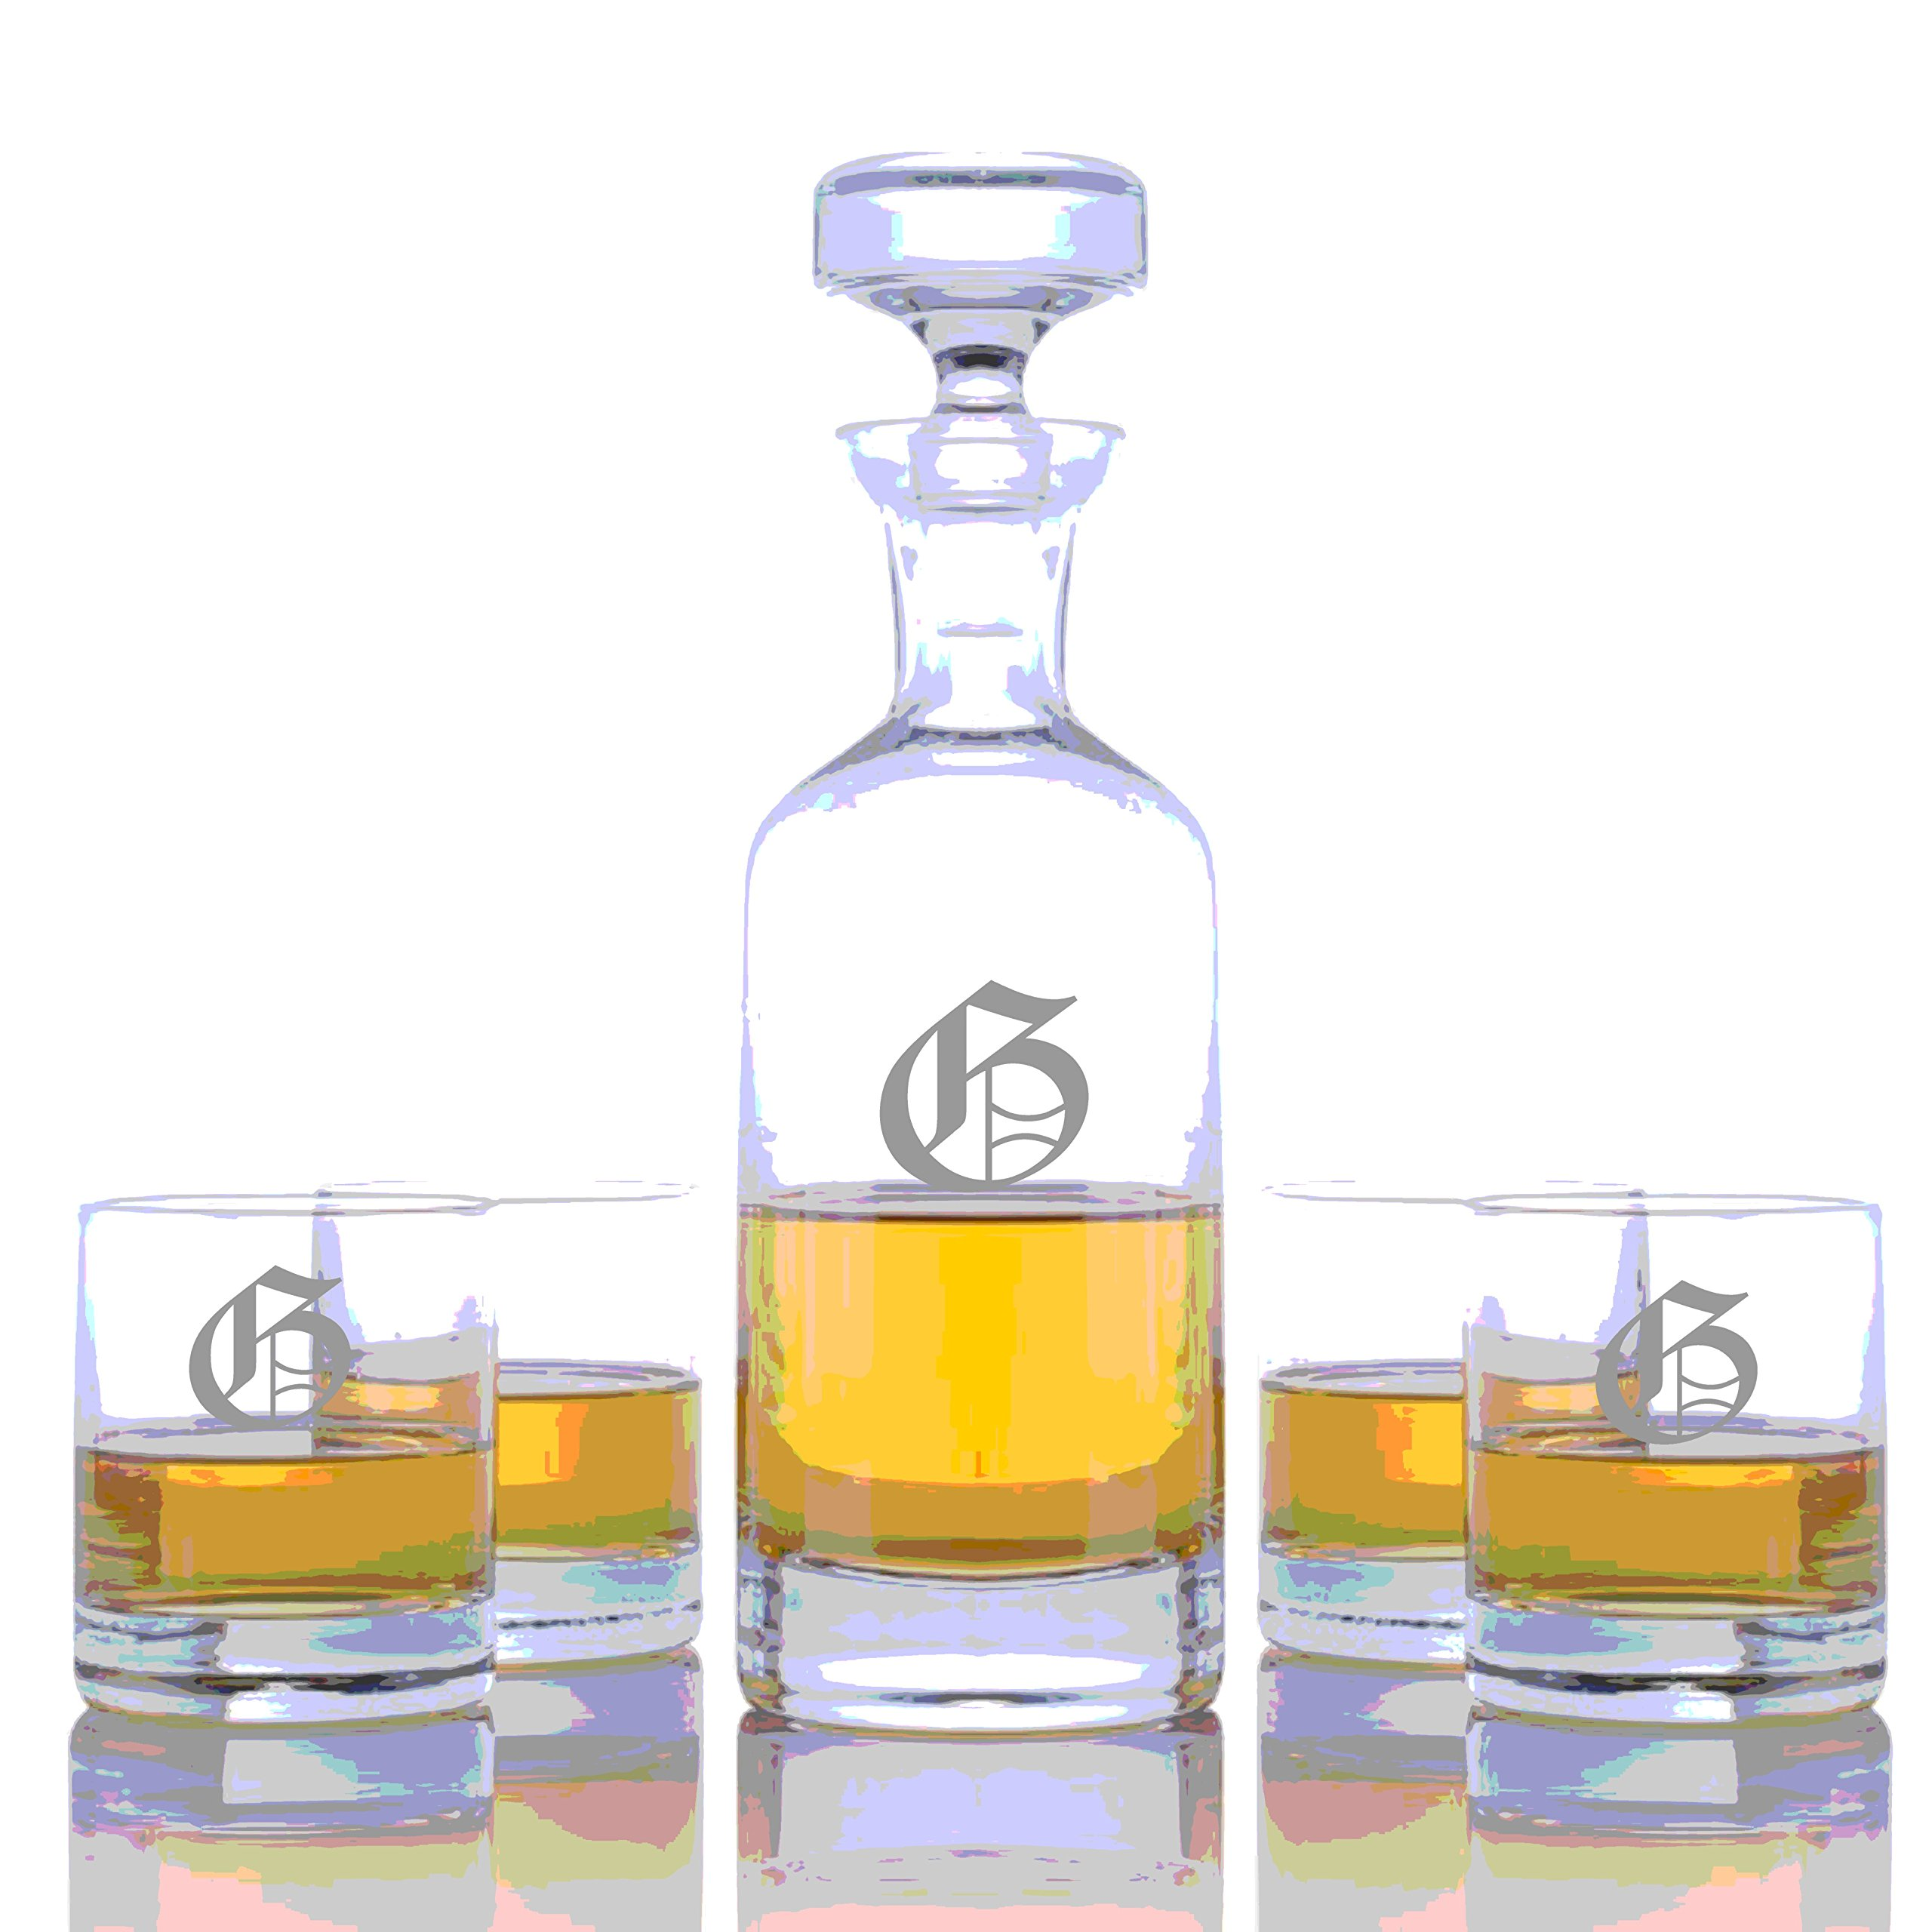 Personalized Ravenscroft Lead-free Crystal Wellington Whiskey Liquor Decanter & 4 Rocks Glasses Engraved & Monogrammed - Retirement Gift - Great Home Bar Addition (Custom 5 Piece Rocks Set)